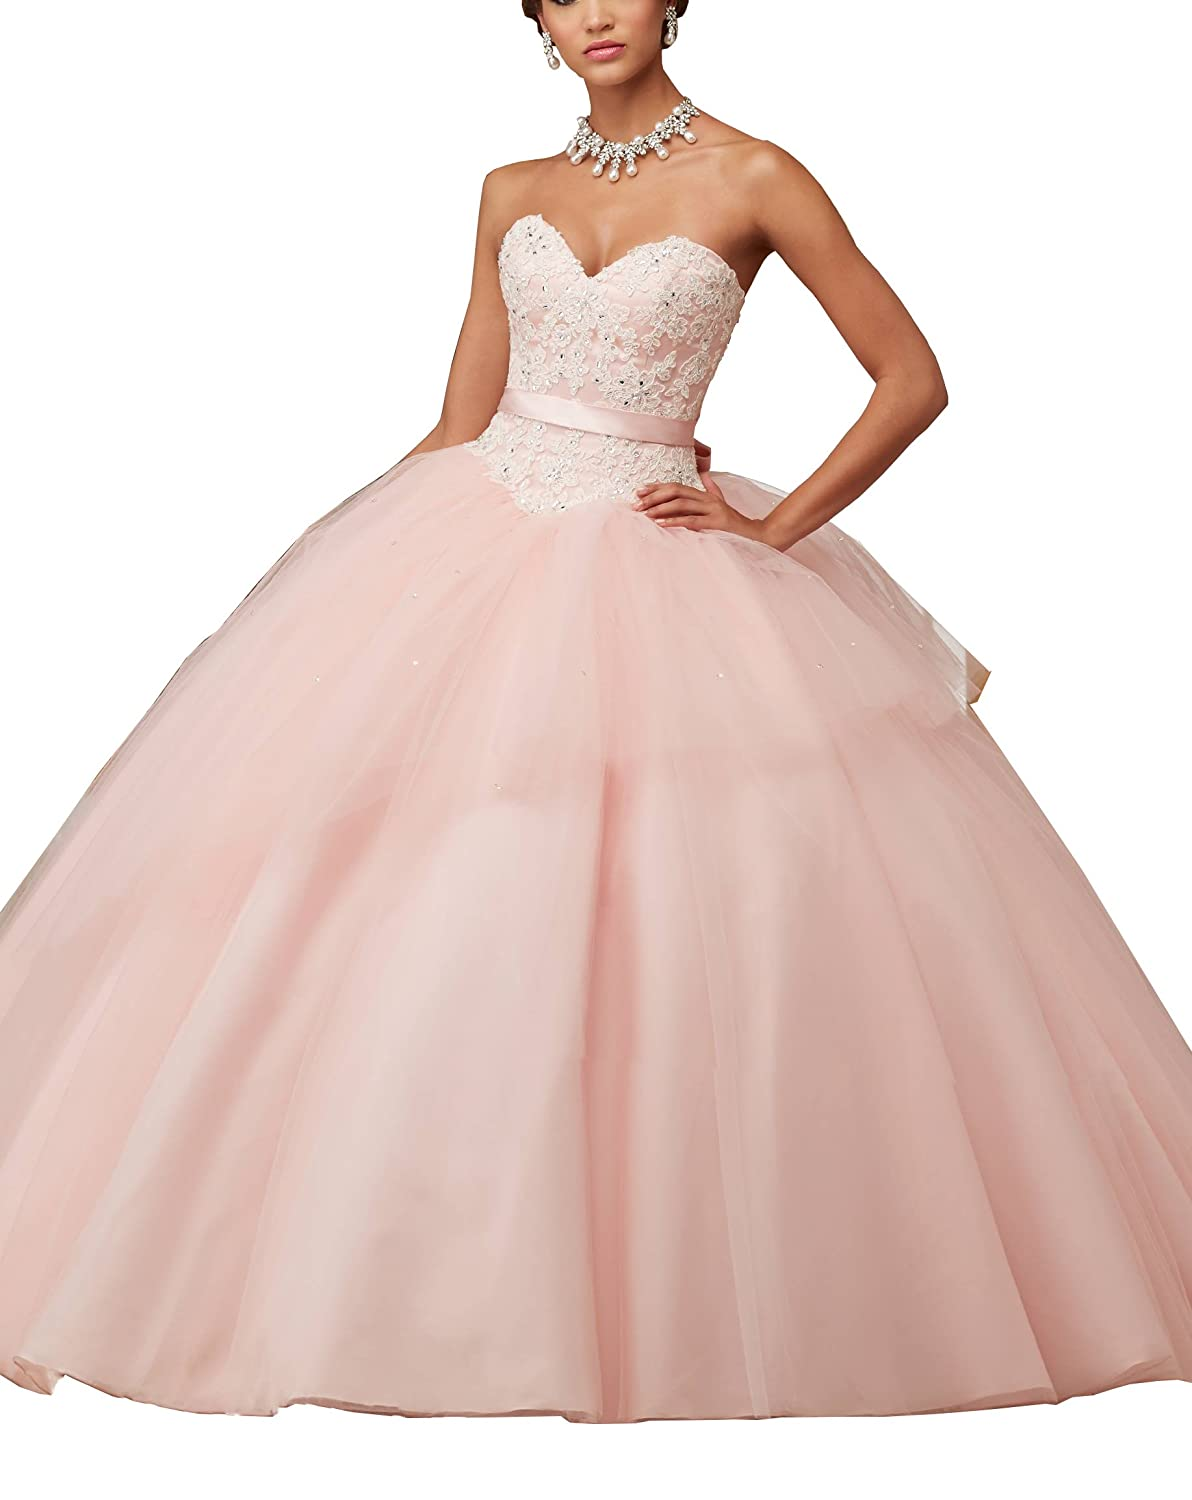 Women\'s Sweetheart Lace Applique Sweet 16 Ball Gown Quinceanera ...